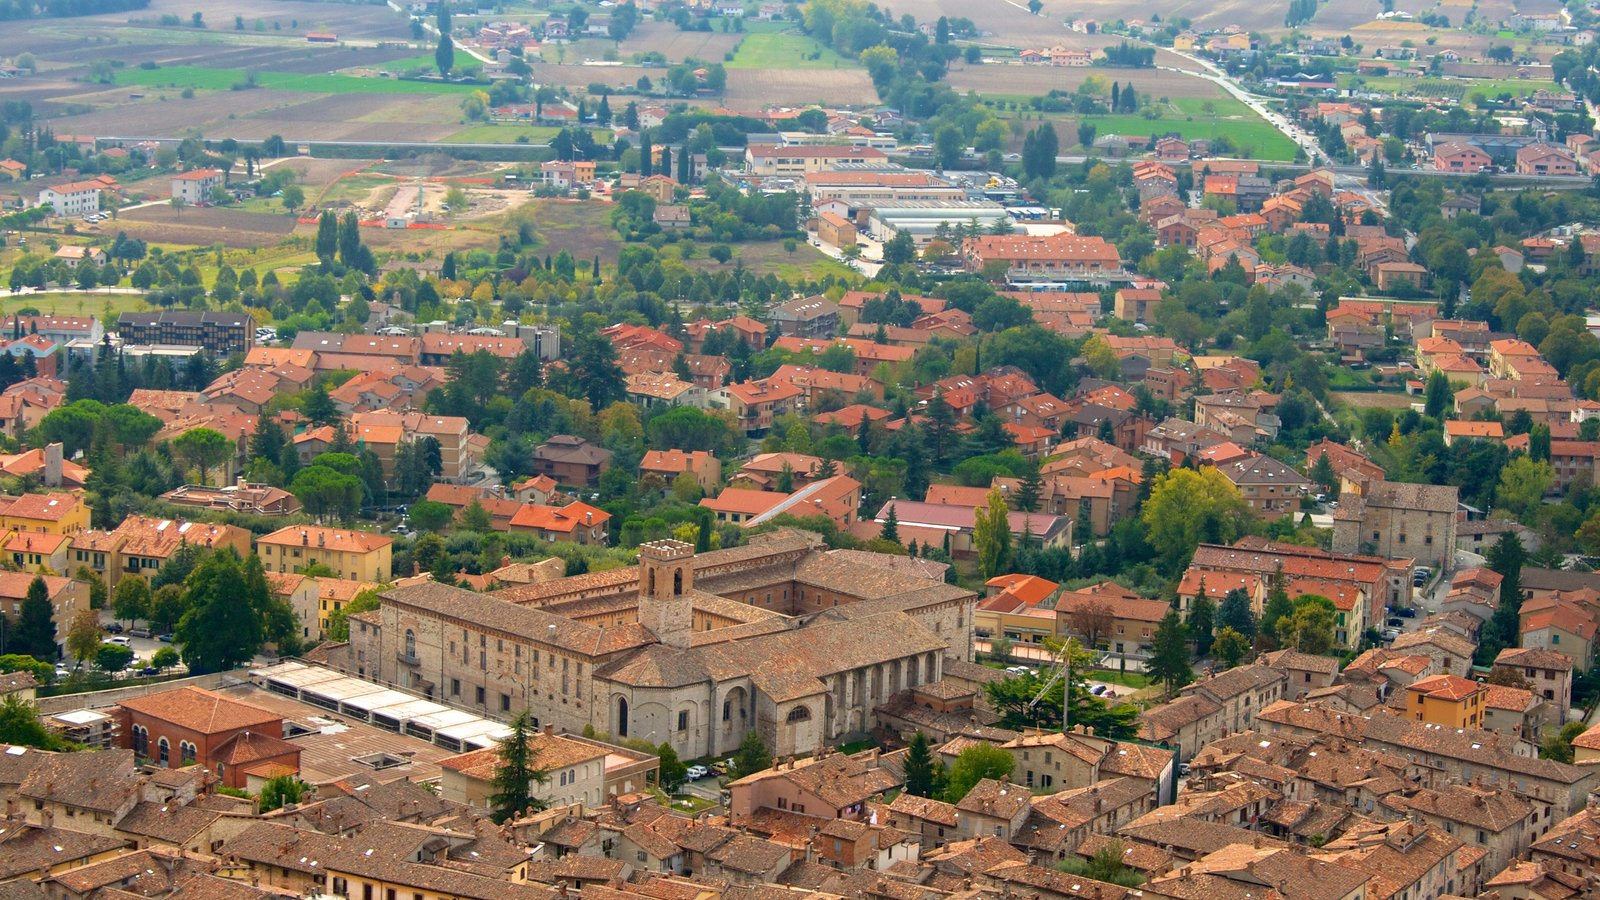 Gubbio showing heritage architecture and a small town or village